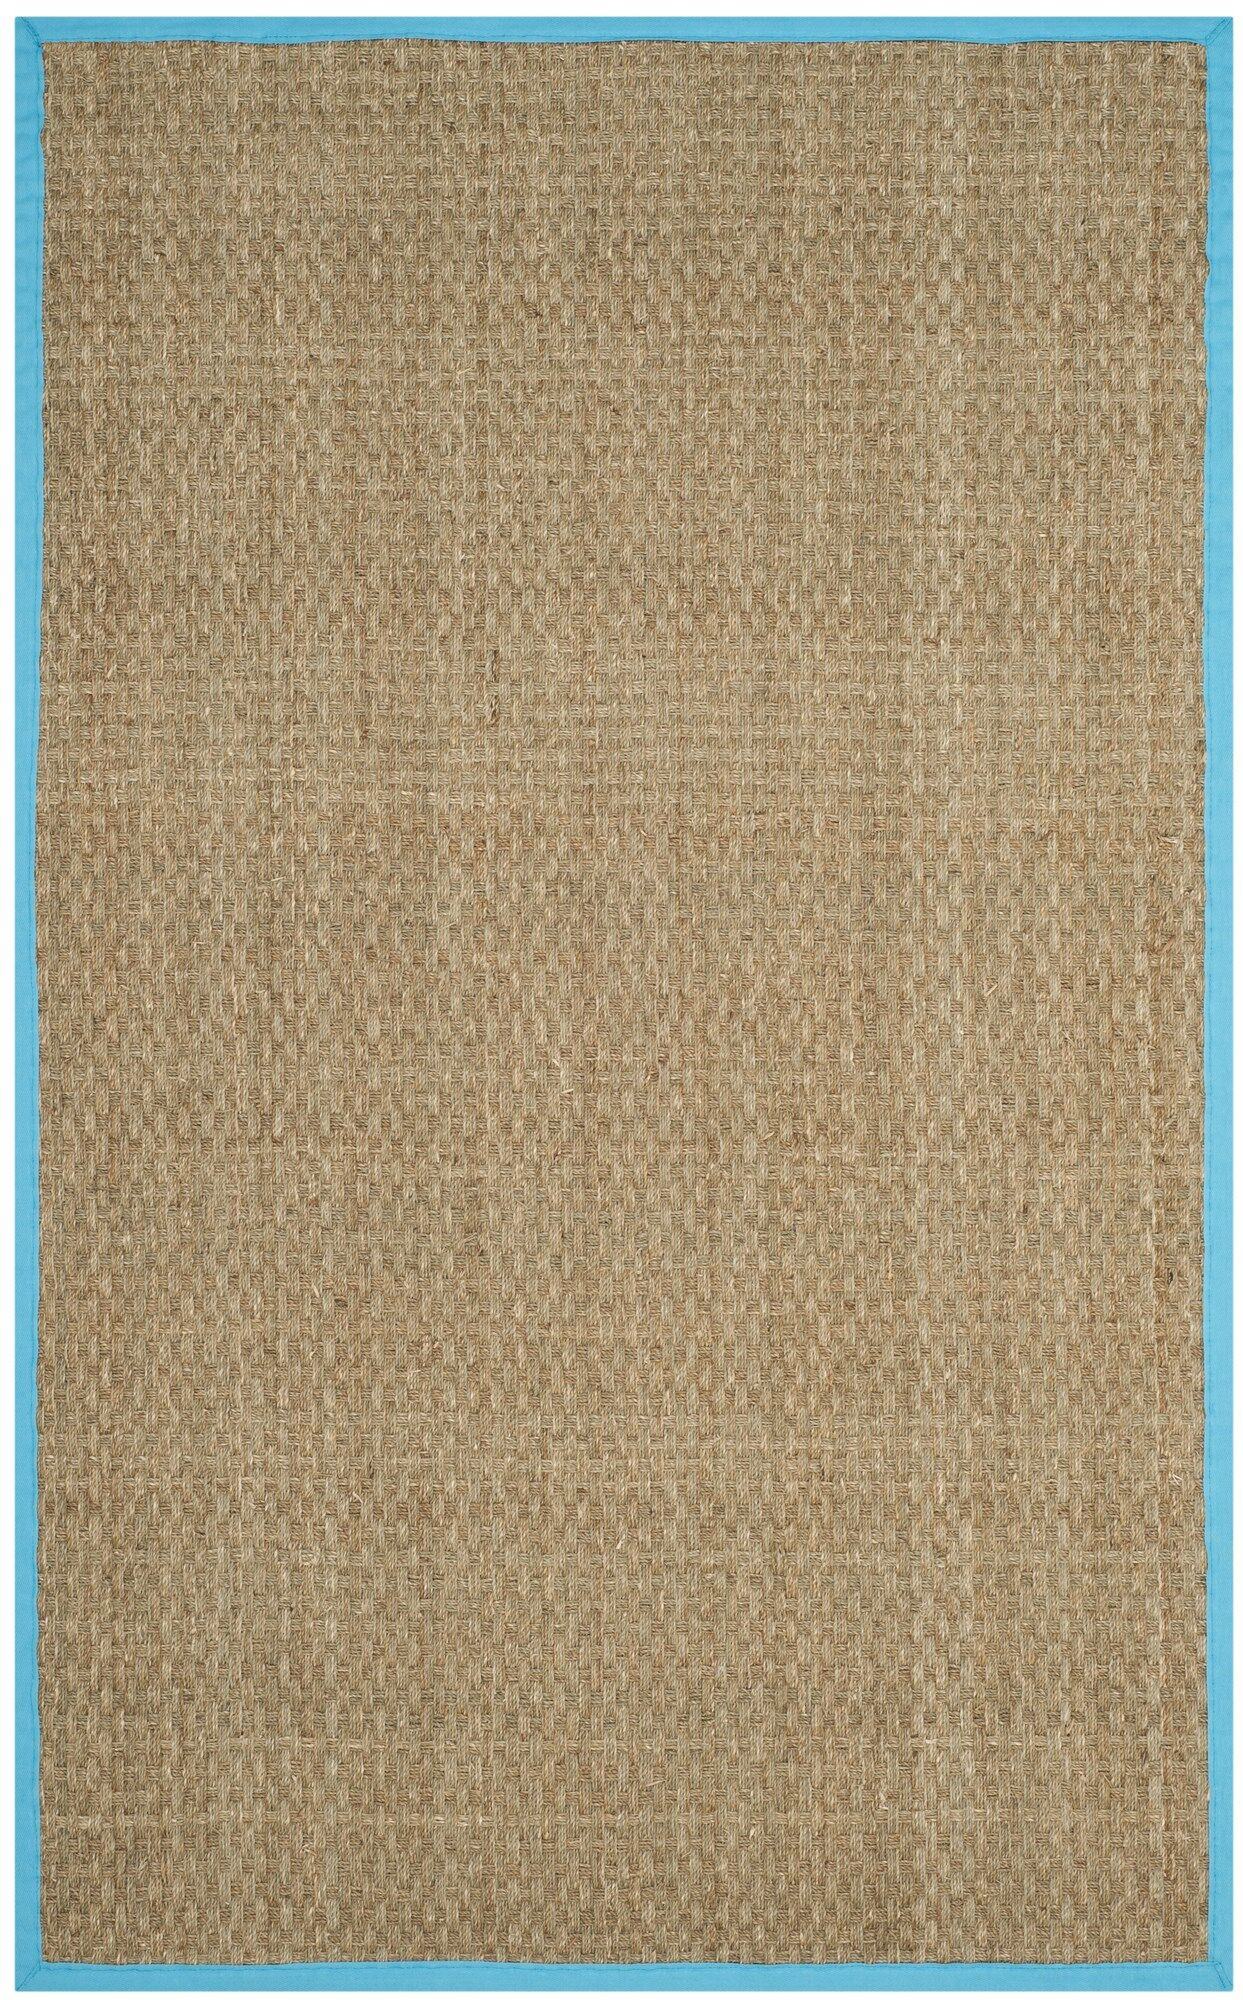 Richmond Natural/Turquoise Area Rug Rug Size: Rectangle 8' x 10'